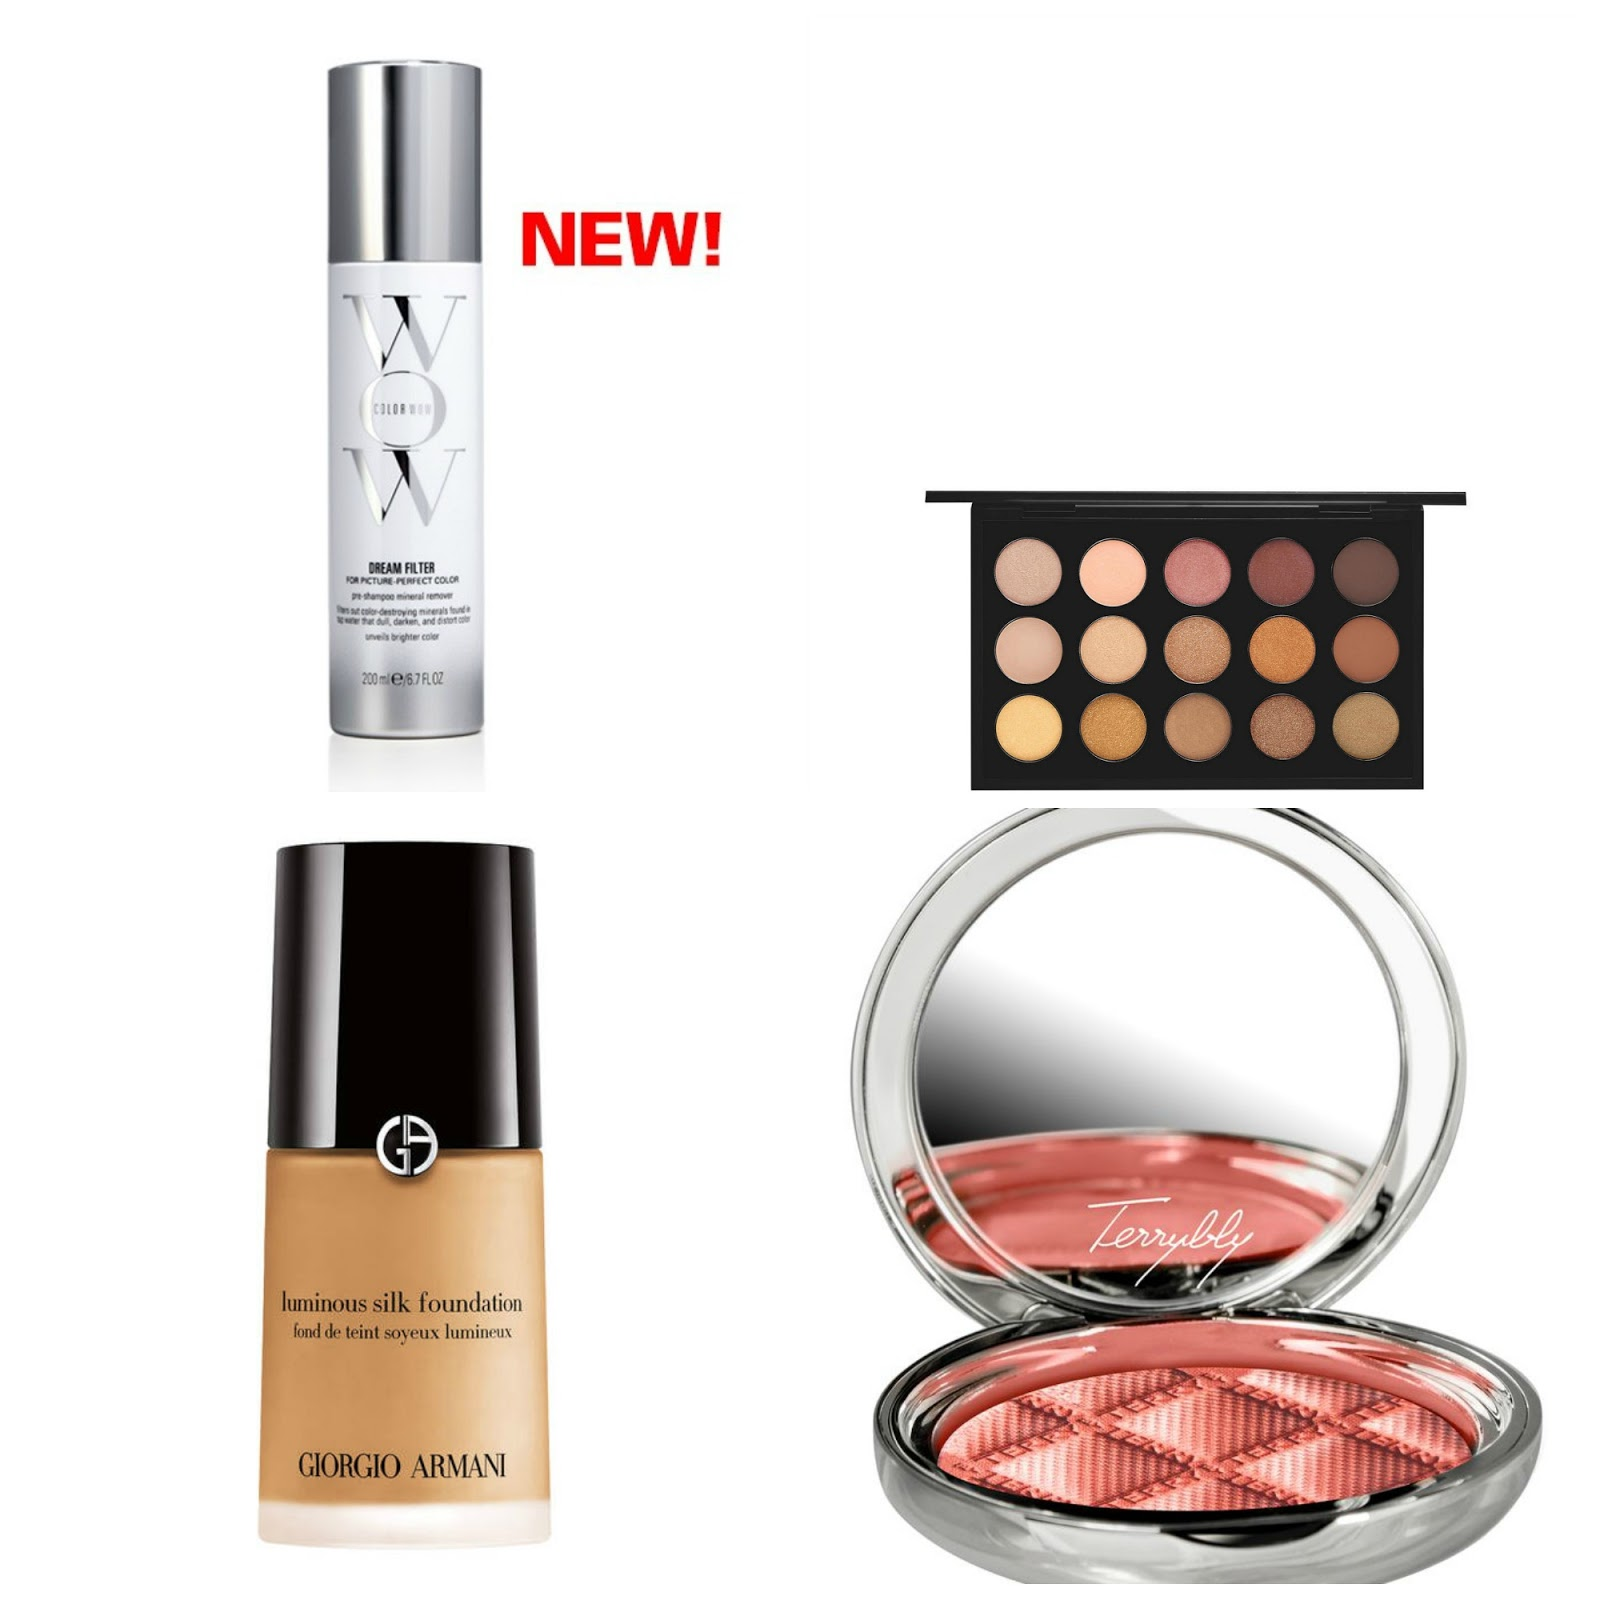 The best beauty deals online at the moment!